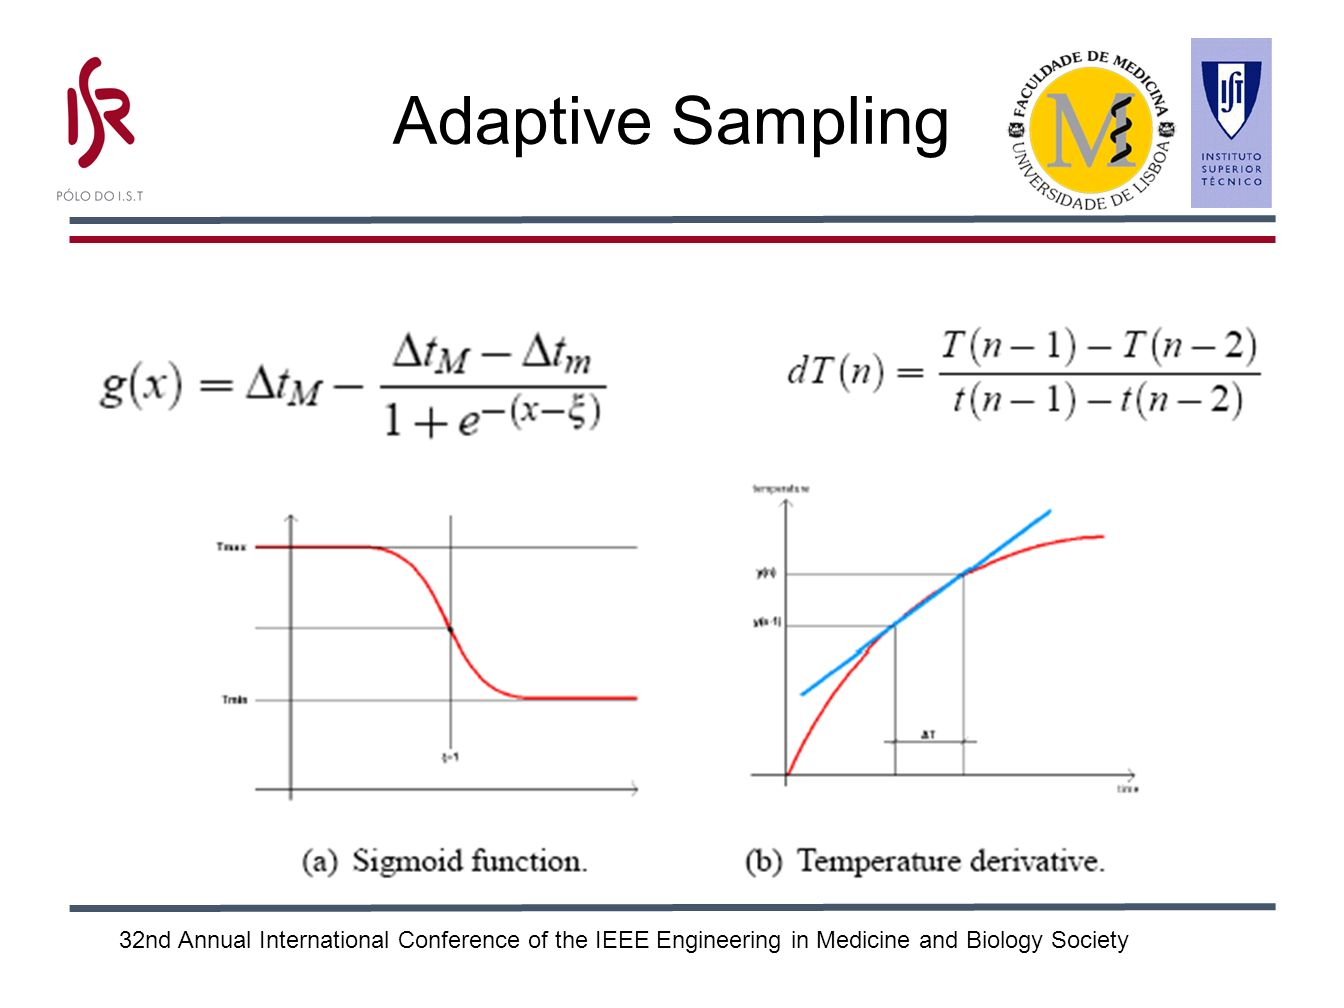 32nd Annual International Conference of the IEEE Engineering in Medicine and Biology Society Adaptive Sampling